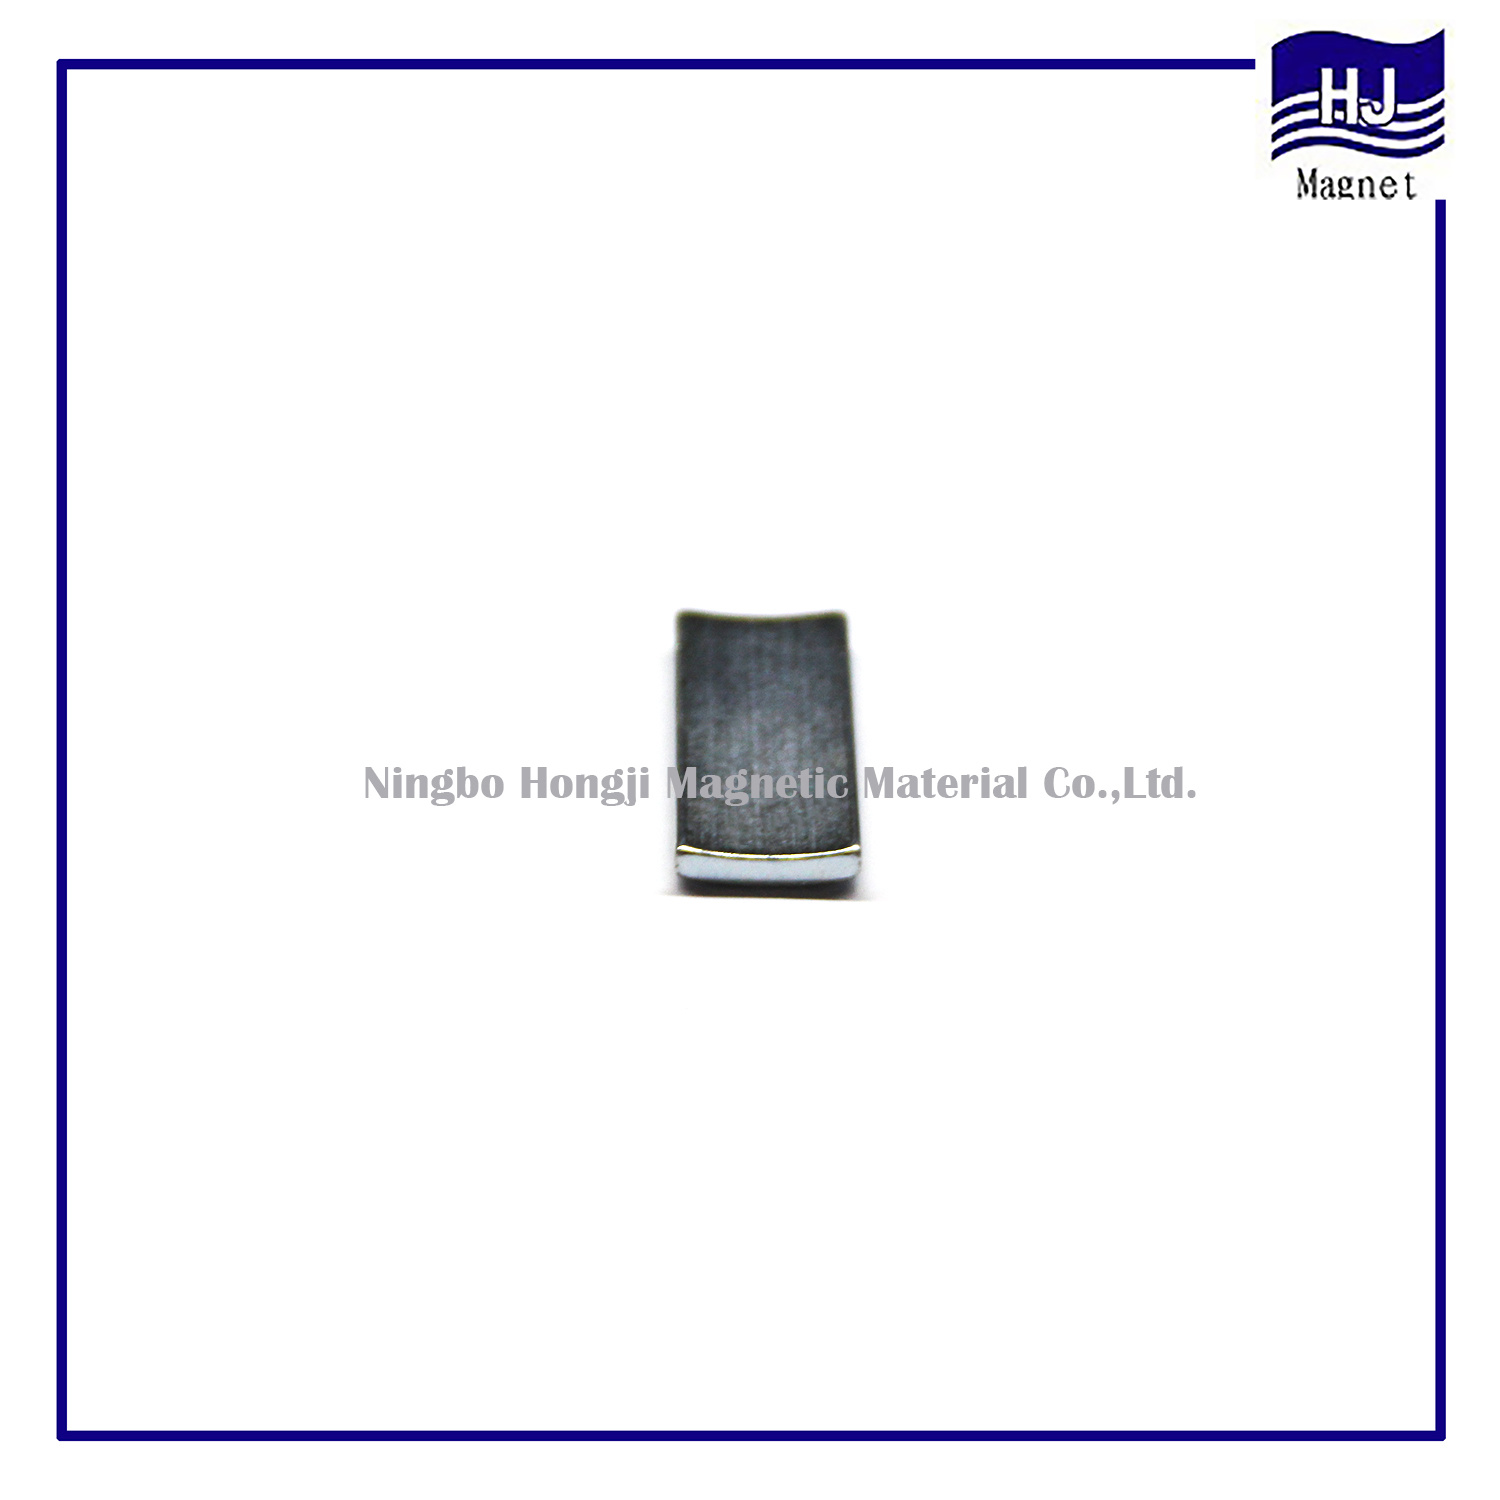 Watt Arc Neodymium NdFeB Magnet with Different Shape and Size High Quality